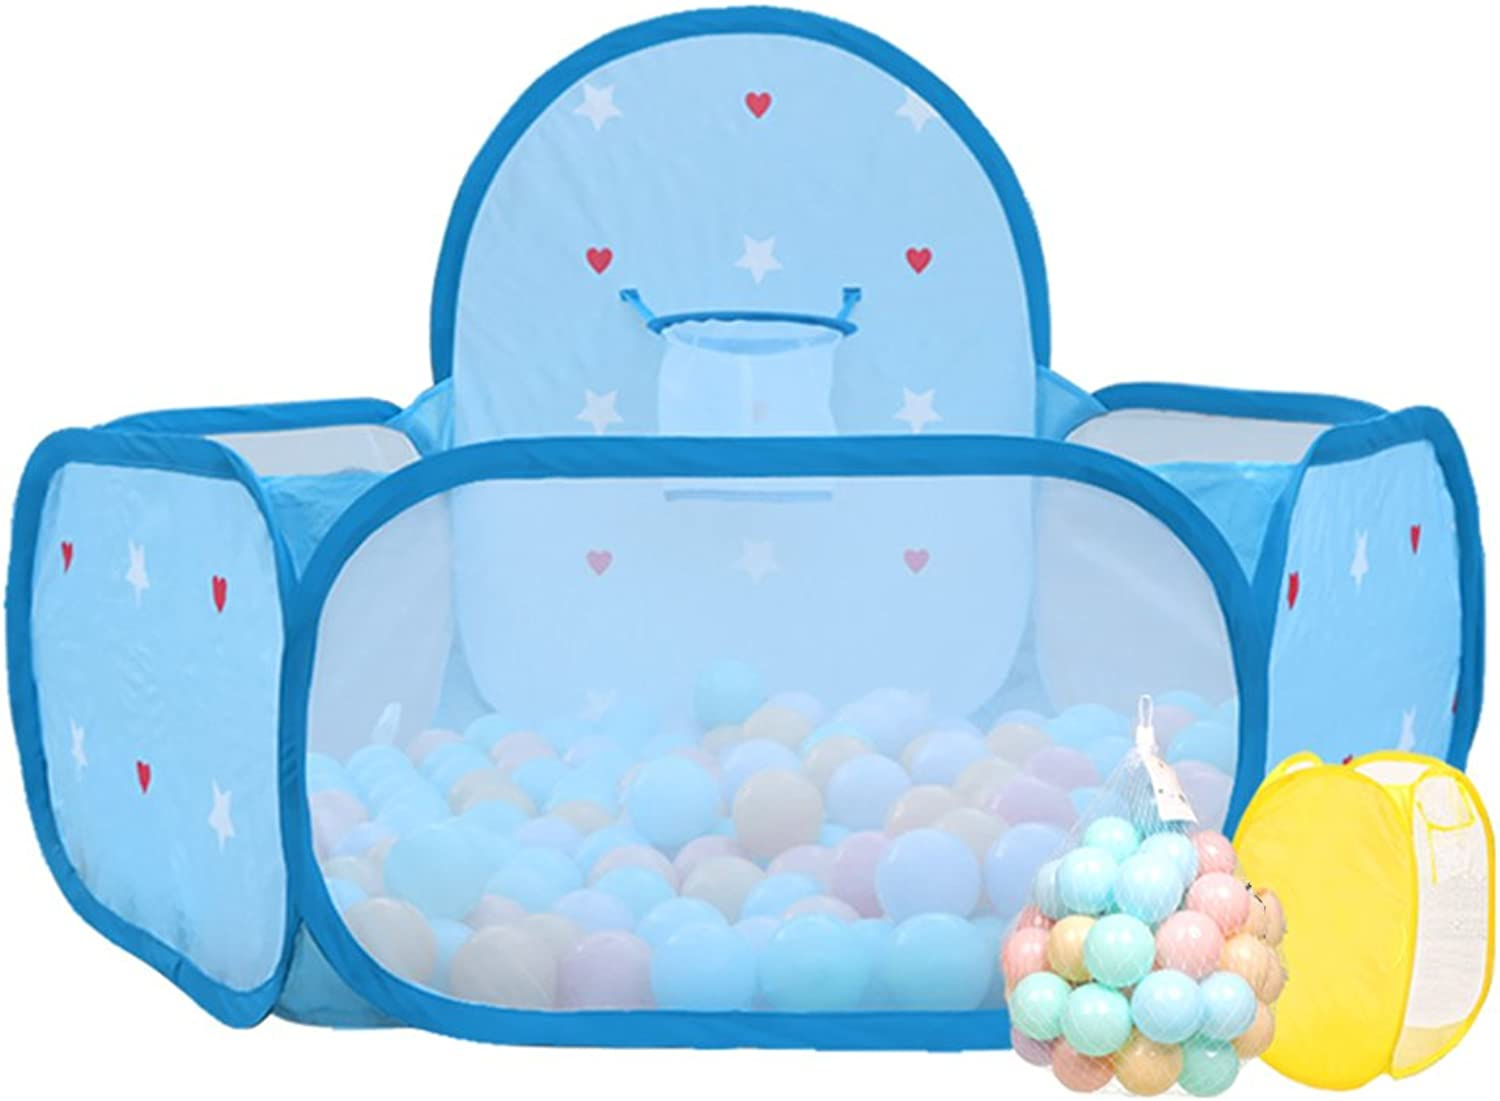 Boys Ball Pit Playpen Toddler Play Tent Sea Ball Pool with Mini Basketball Hoop, Indoor Outdoor Kids Safety Play Center Yard, bluee (Size   50 Balls)